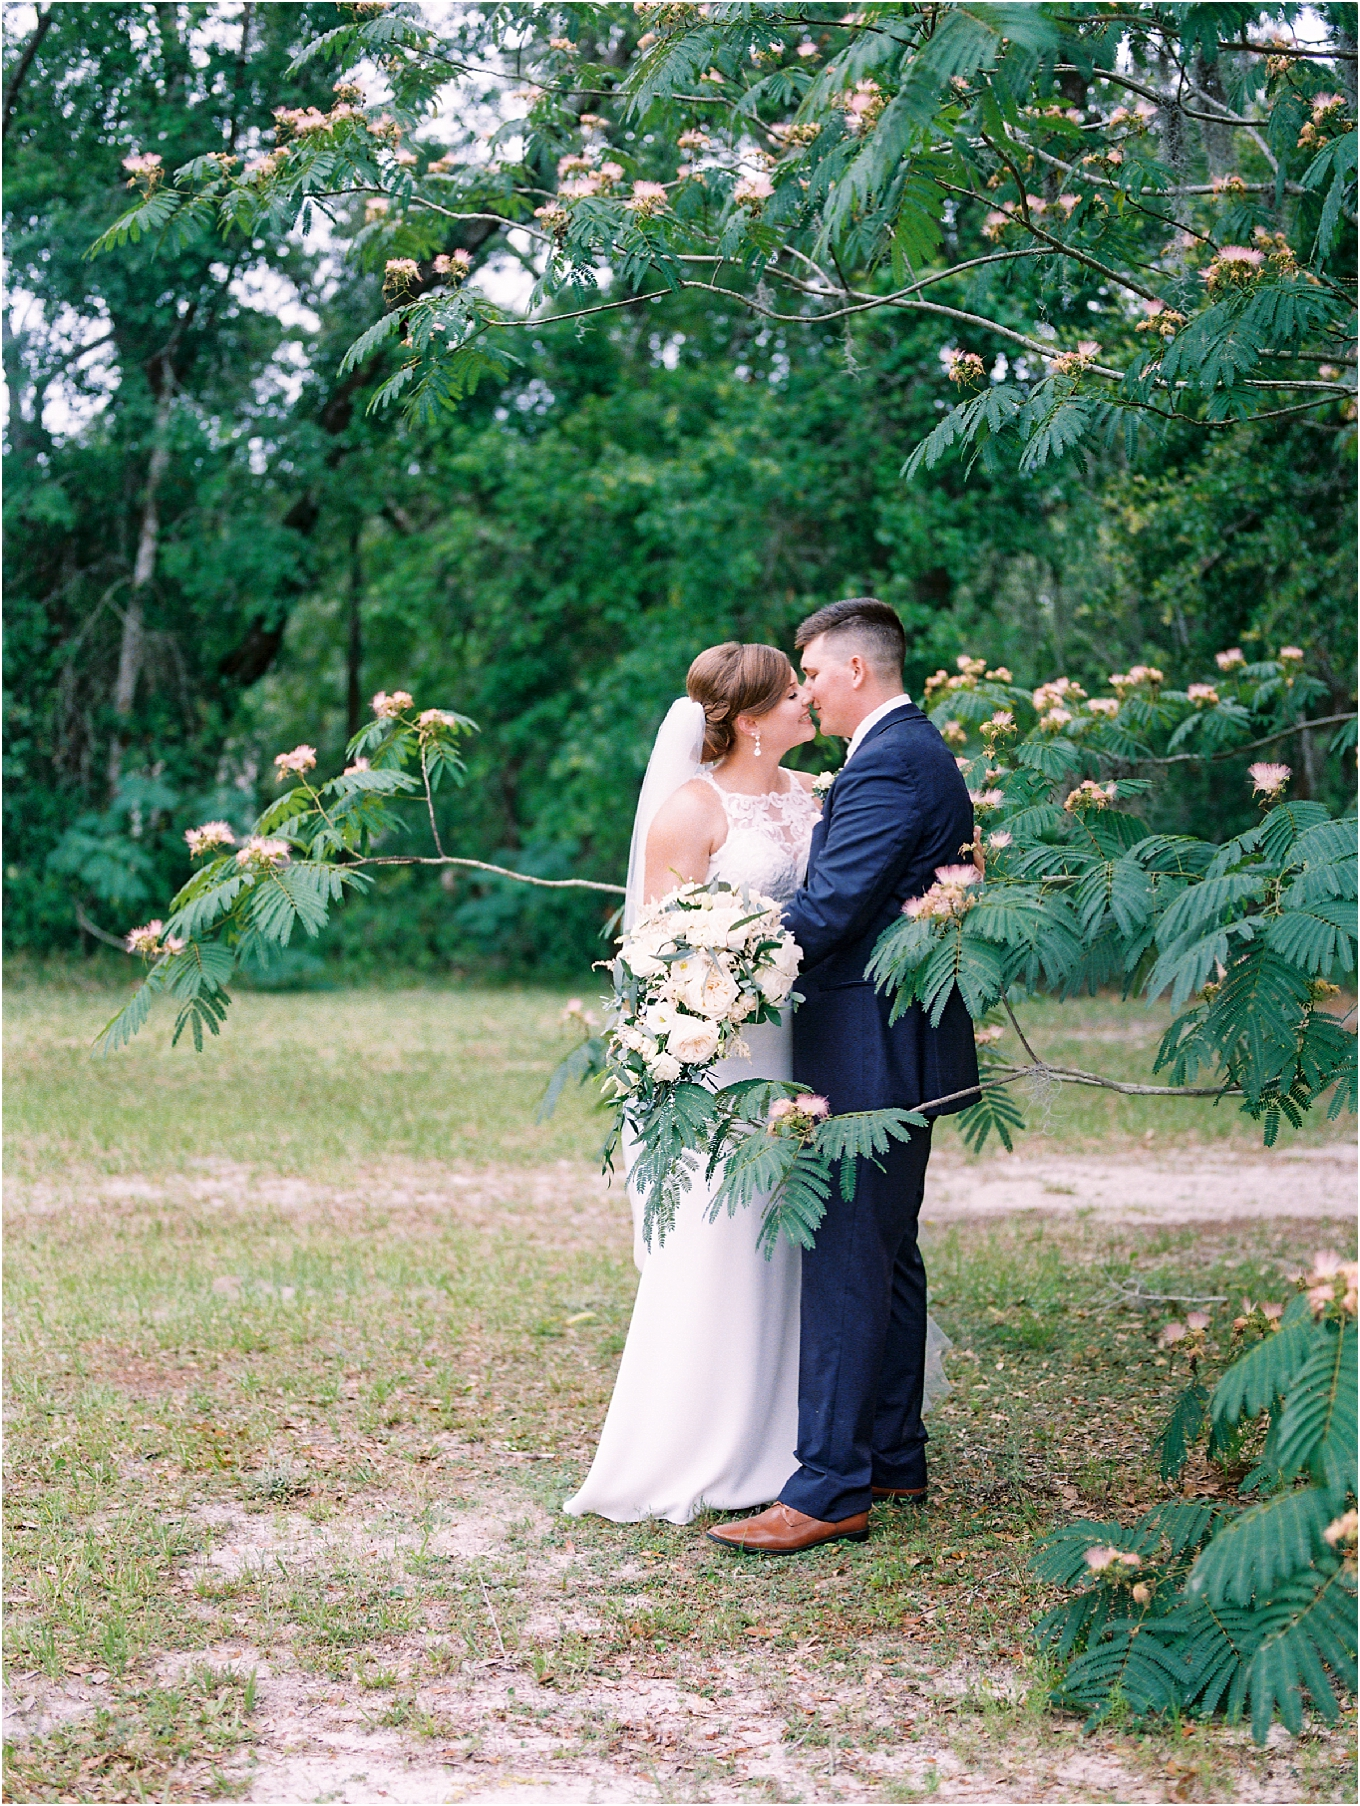 Lisa Silva Photography- Ponte Vedra Beach, St. Augustine and Jacksonville, Florida Fine Art Film Wedding and Boudoir Photography- Elegant Blush and Navy Wedding at Chandler Oaks Barn in St. Augustine, Florida_0088.jpg